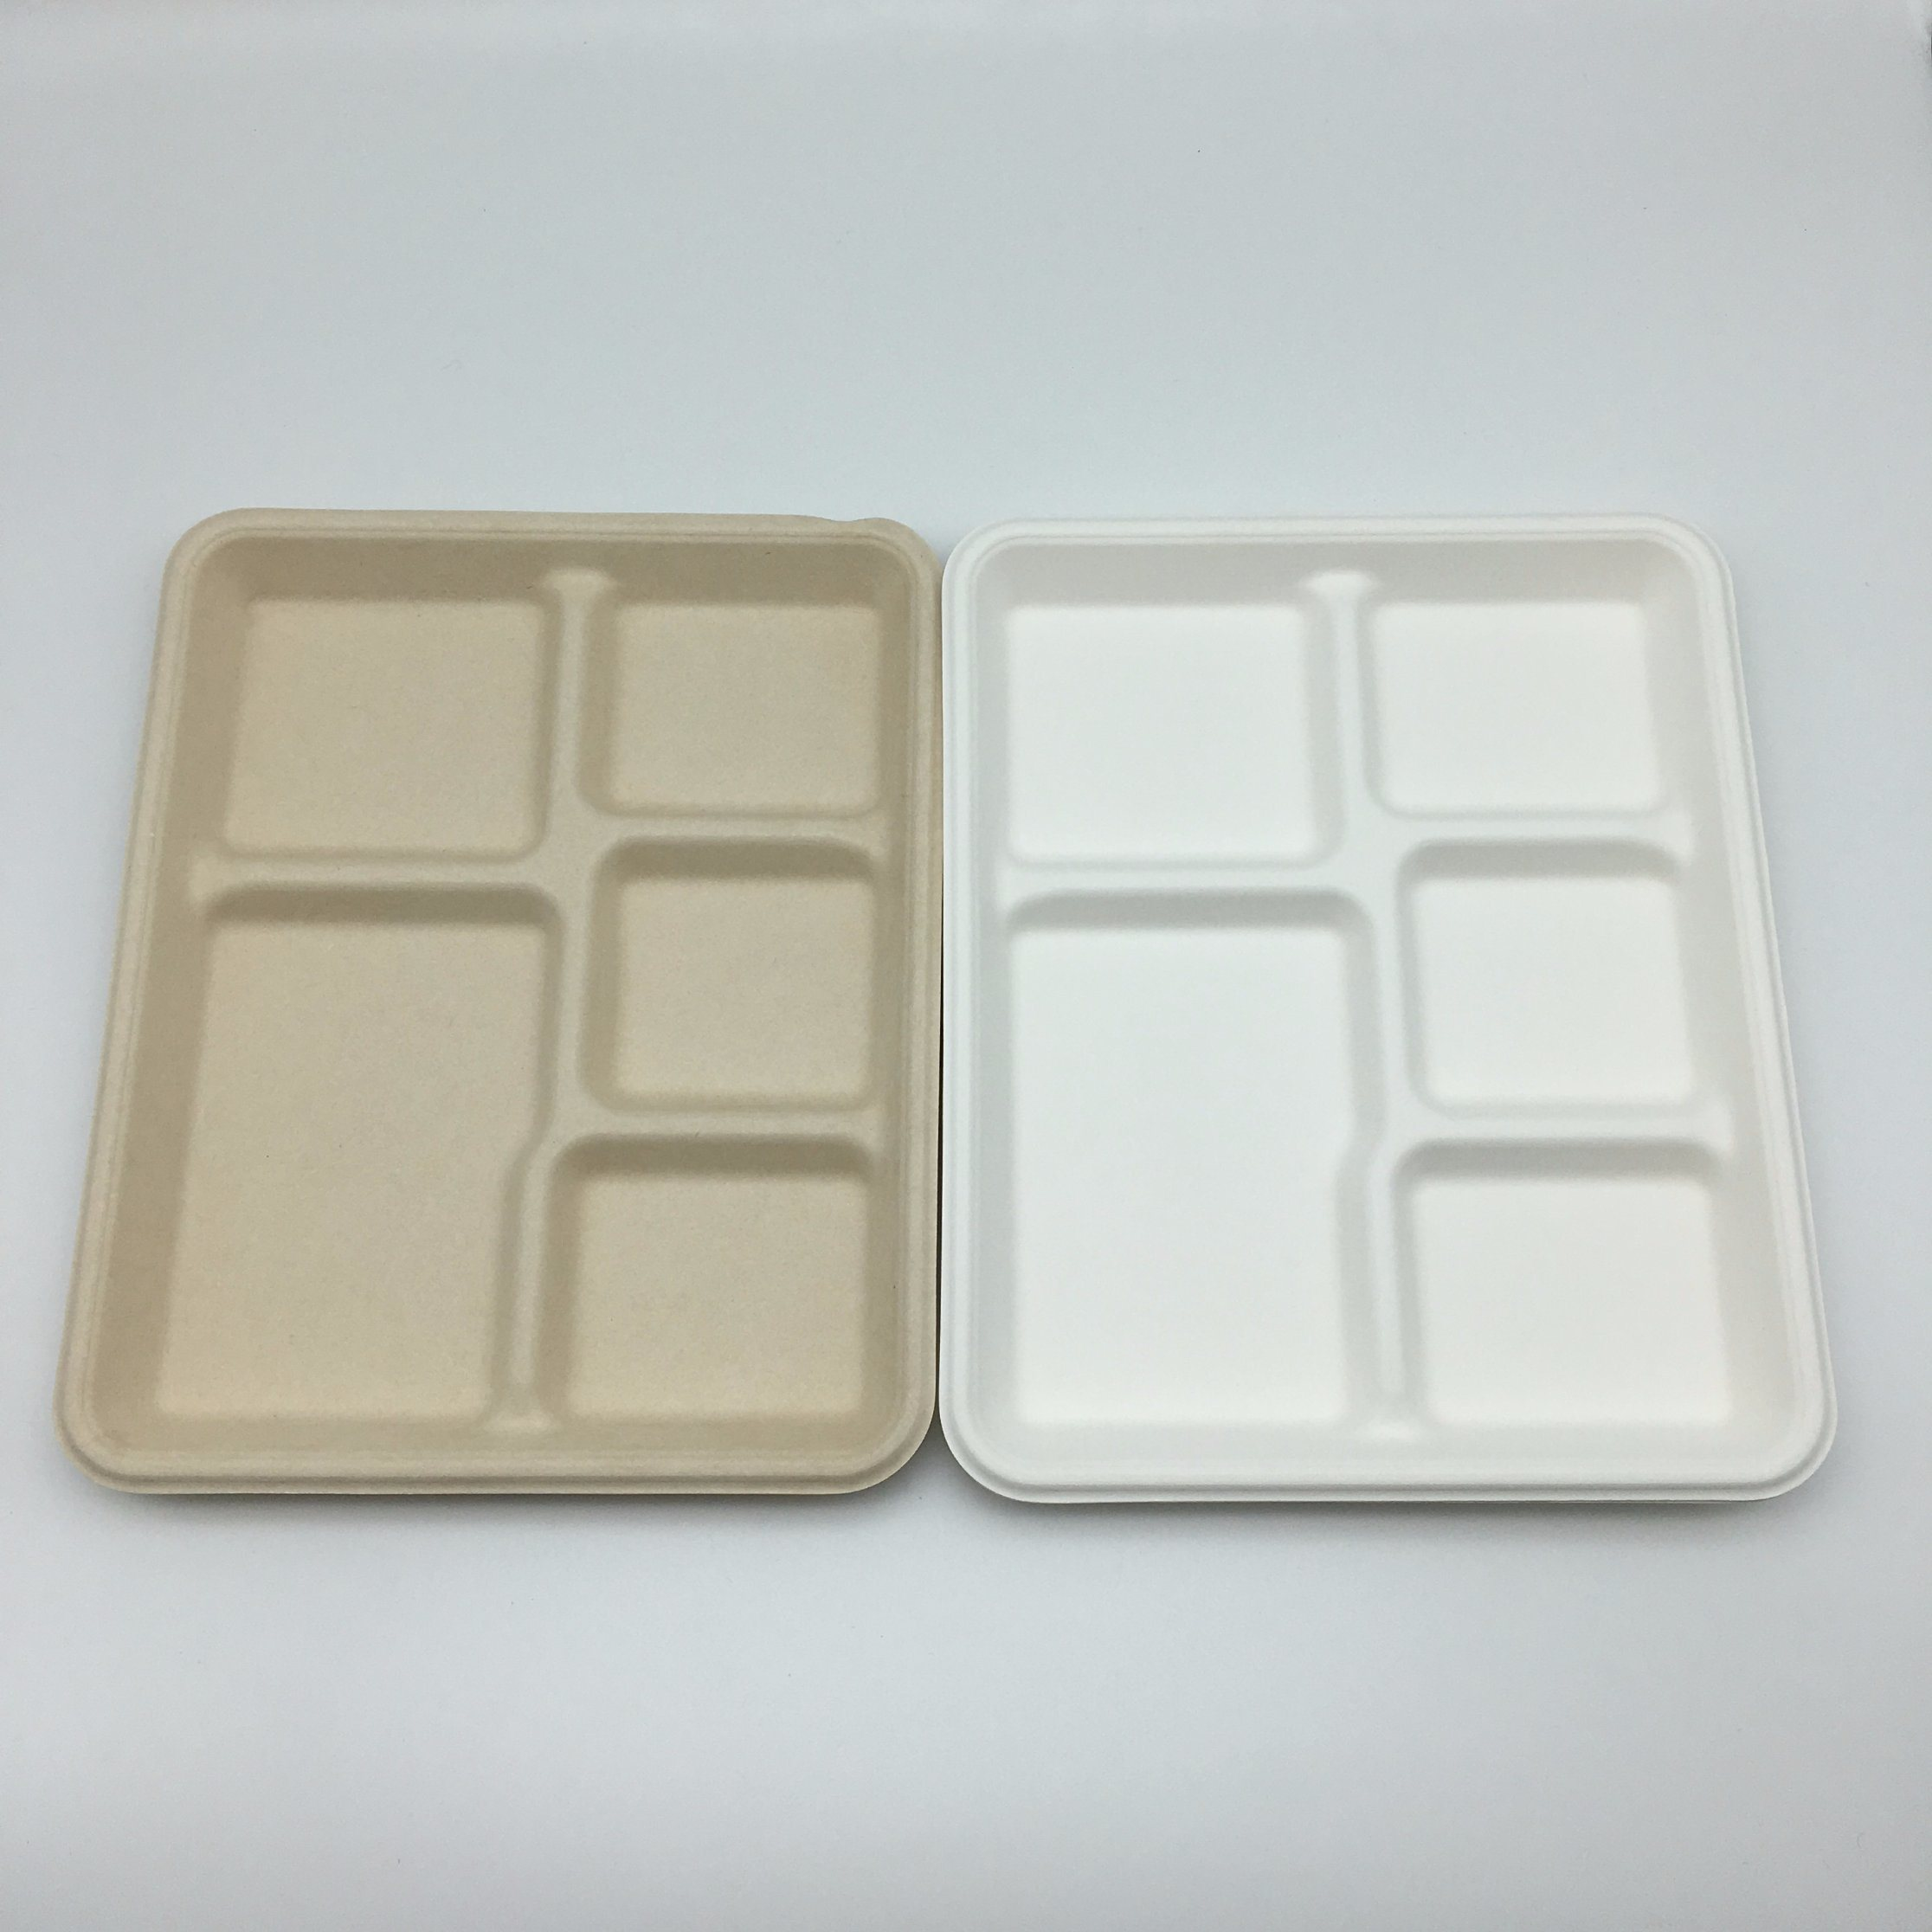 China Disposable Tableware Biodegradable Bagasse Food Container 5 Compartments Food Tableware Sugarcane Tableware Plates - China Container Plates ... & China Disposable Tableware Biodegradable Bagasse Food Container 5 ...